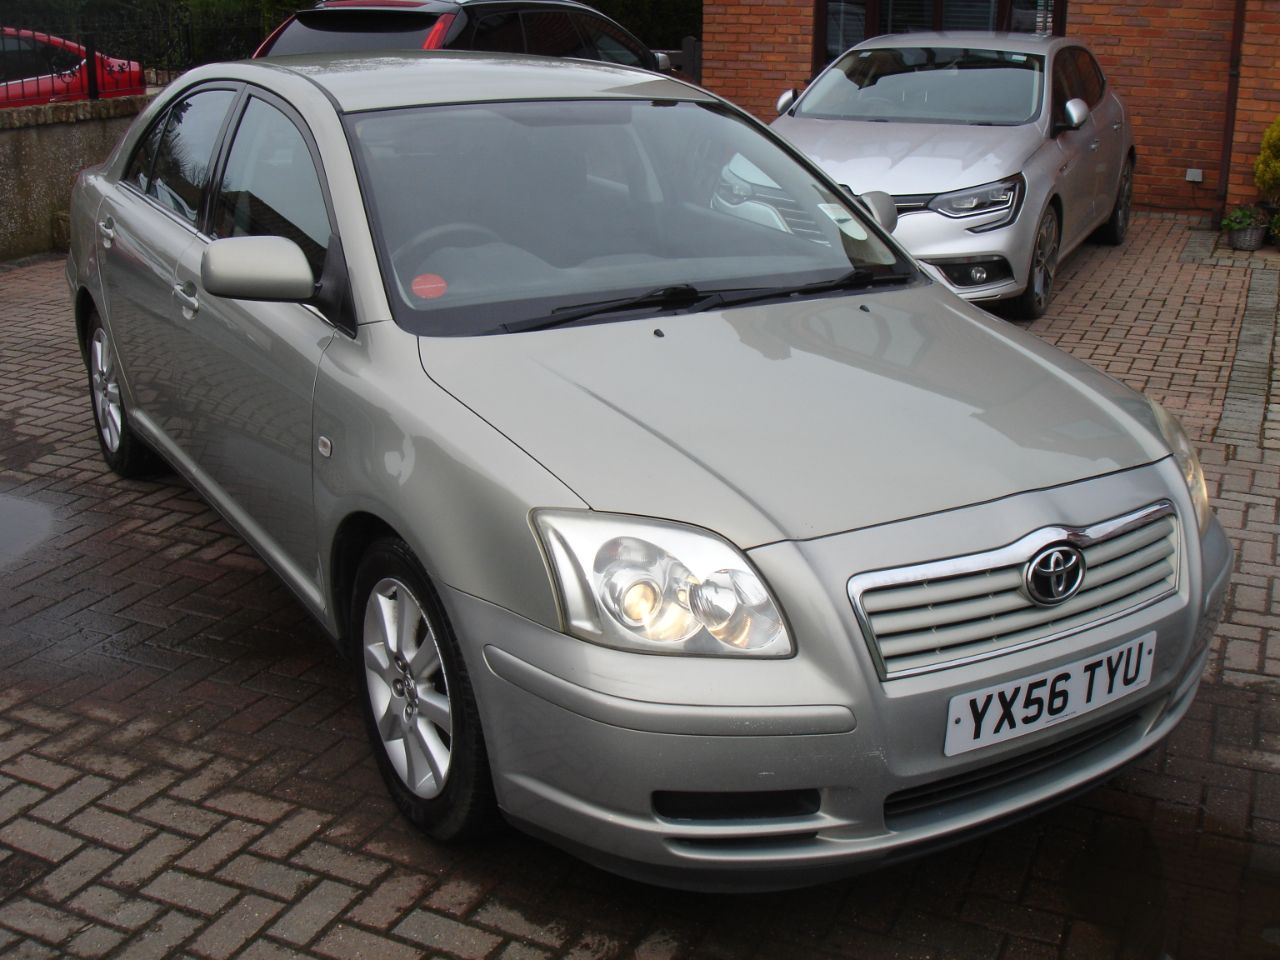 Toyota Avensis 1.8 VVT-i T3-S 5dr Hatchback Petrol Silver at Level Pitch Selby